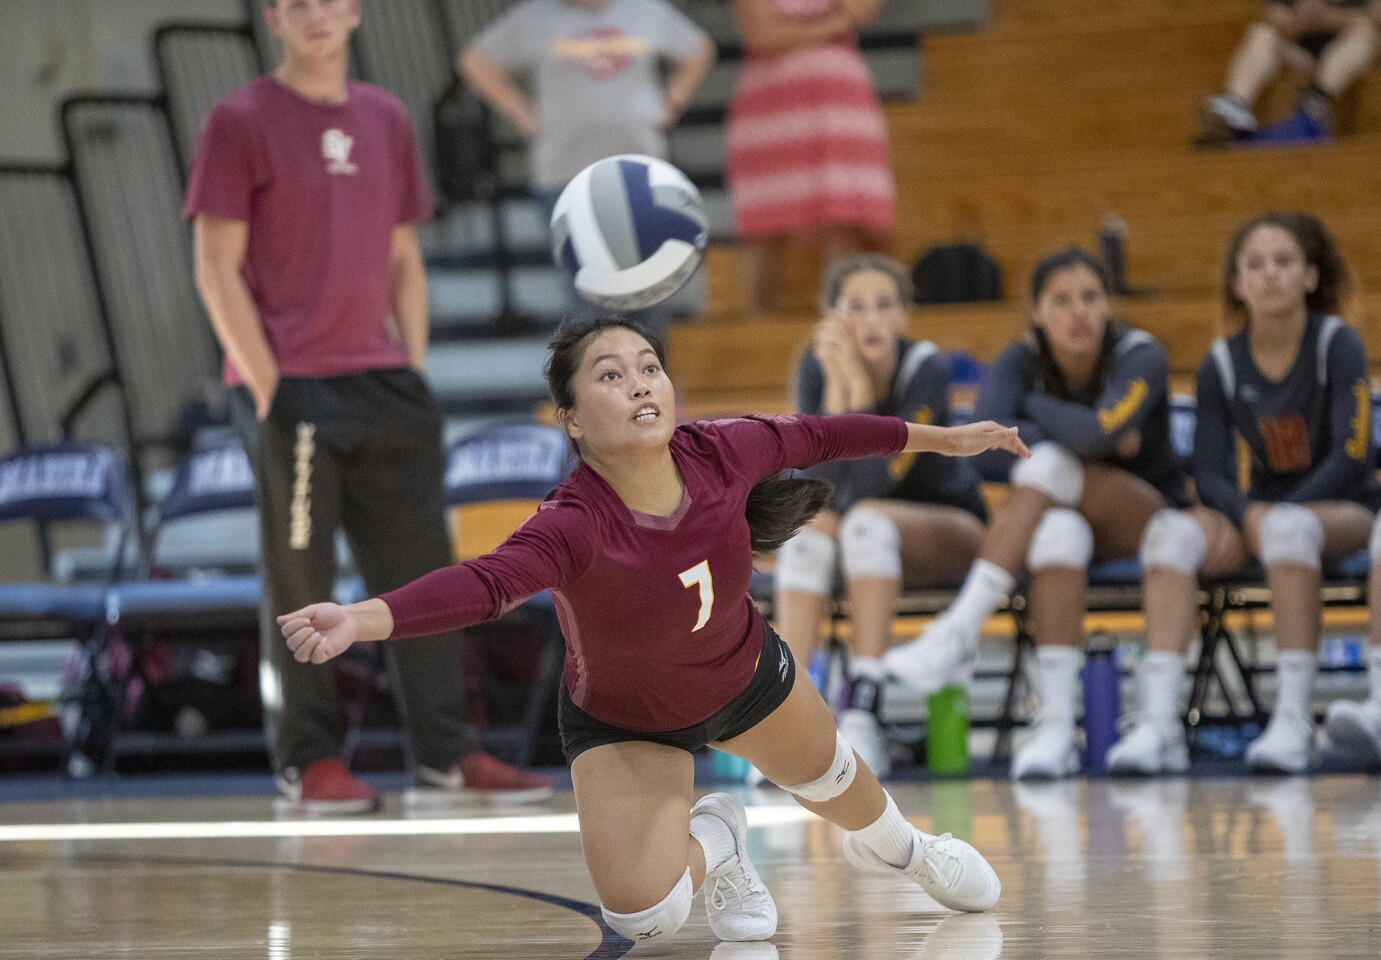 Photo Gallery: Ocean View vs. Marina in a girls' volleyball match